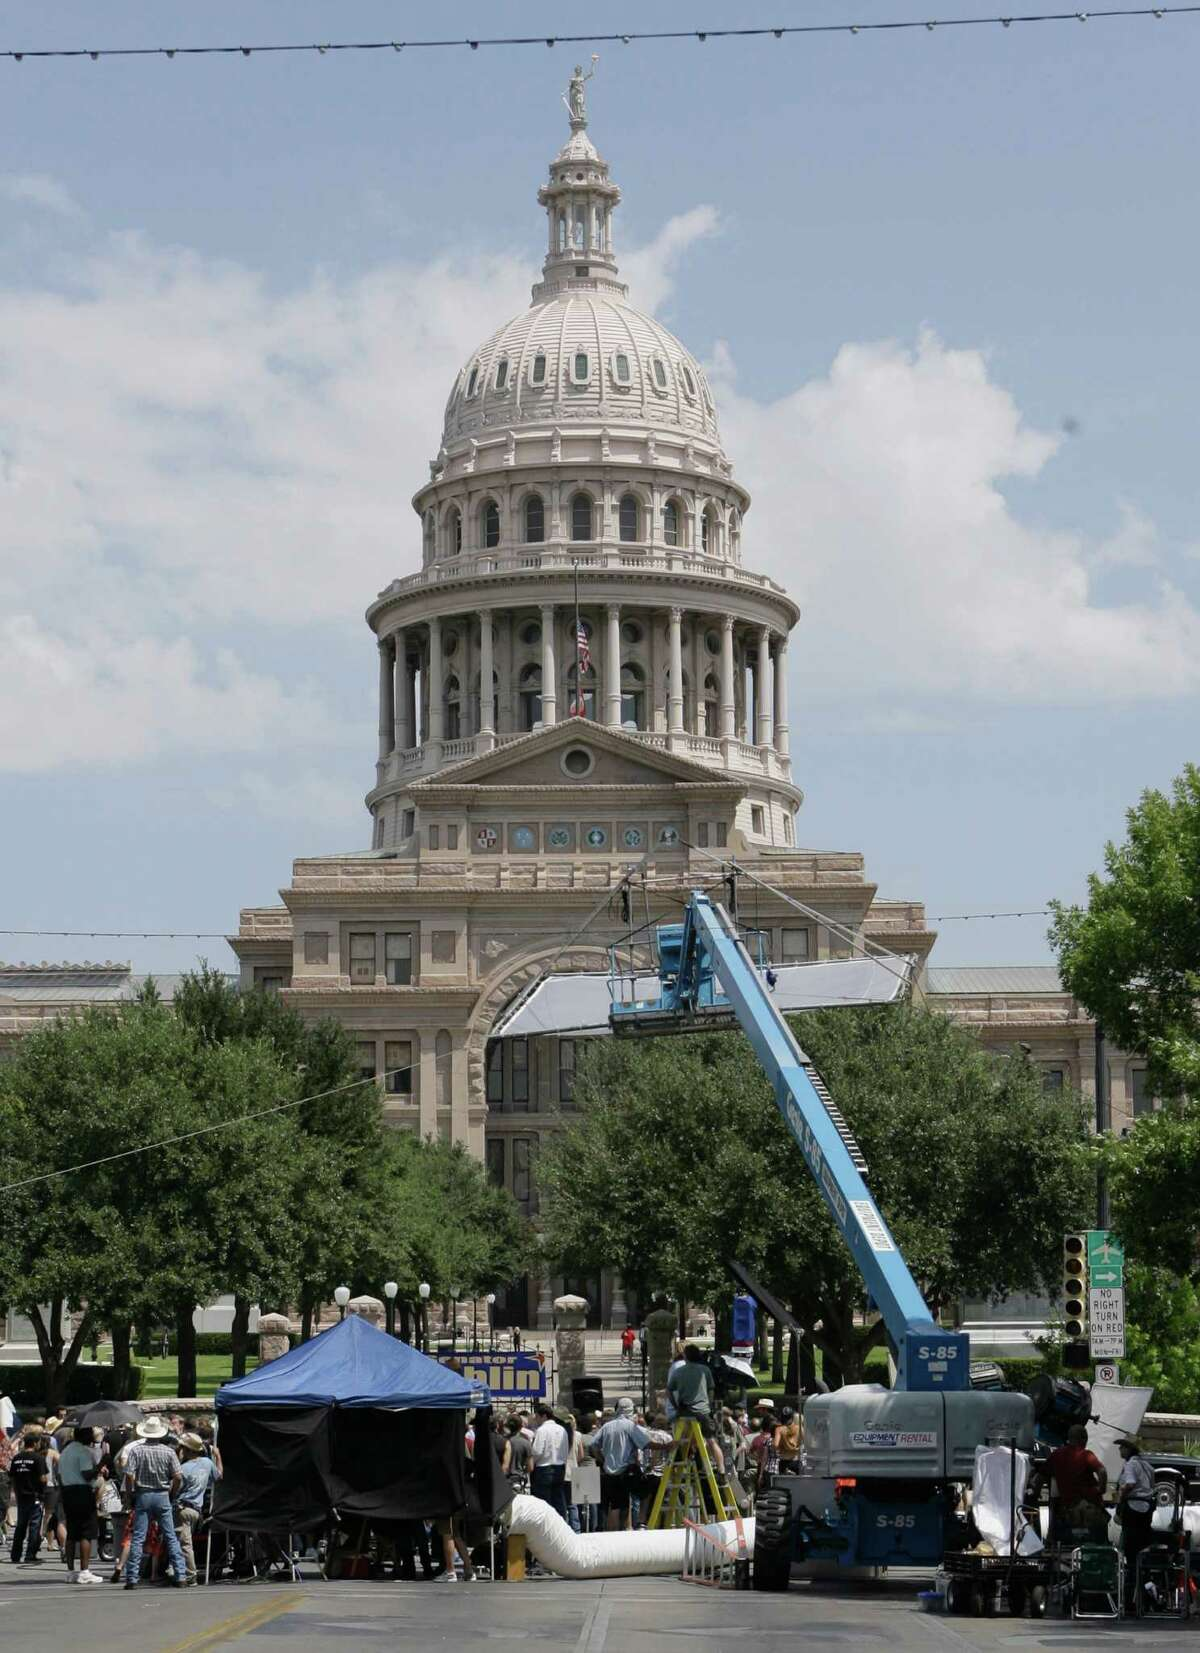 A film crew is shown on location at Congress Avenue near the Texas state Capitol for the Robert Rodriguez action movie